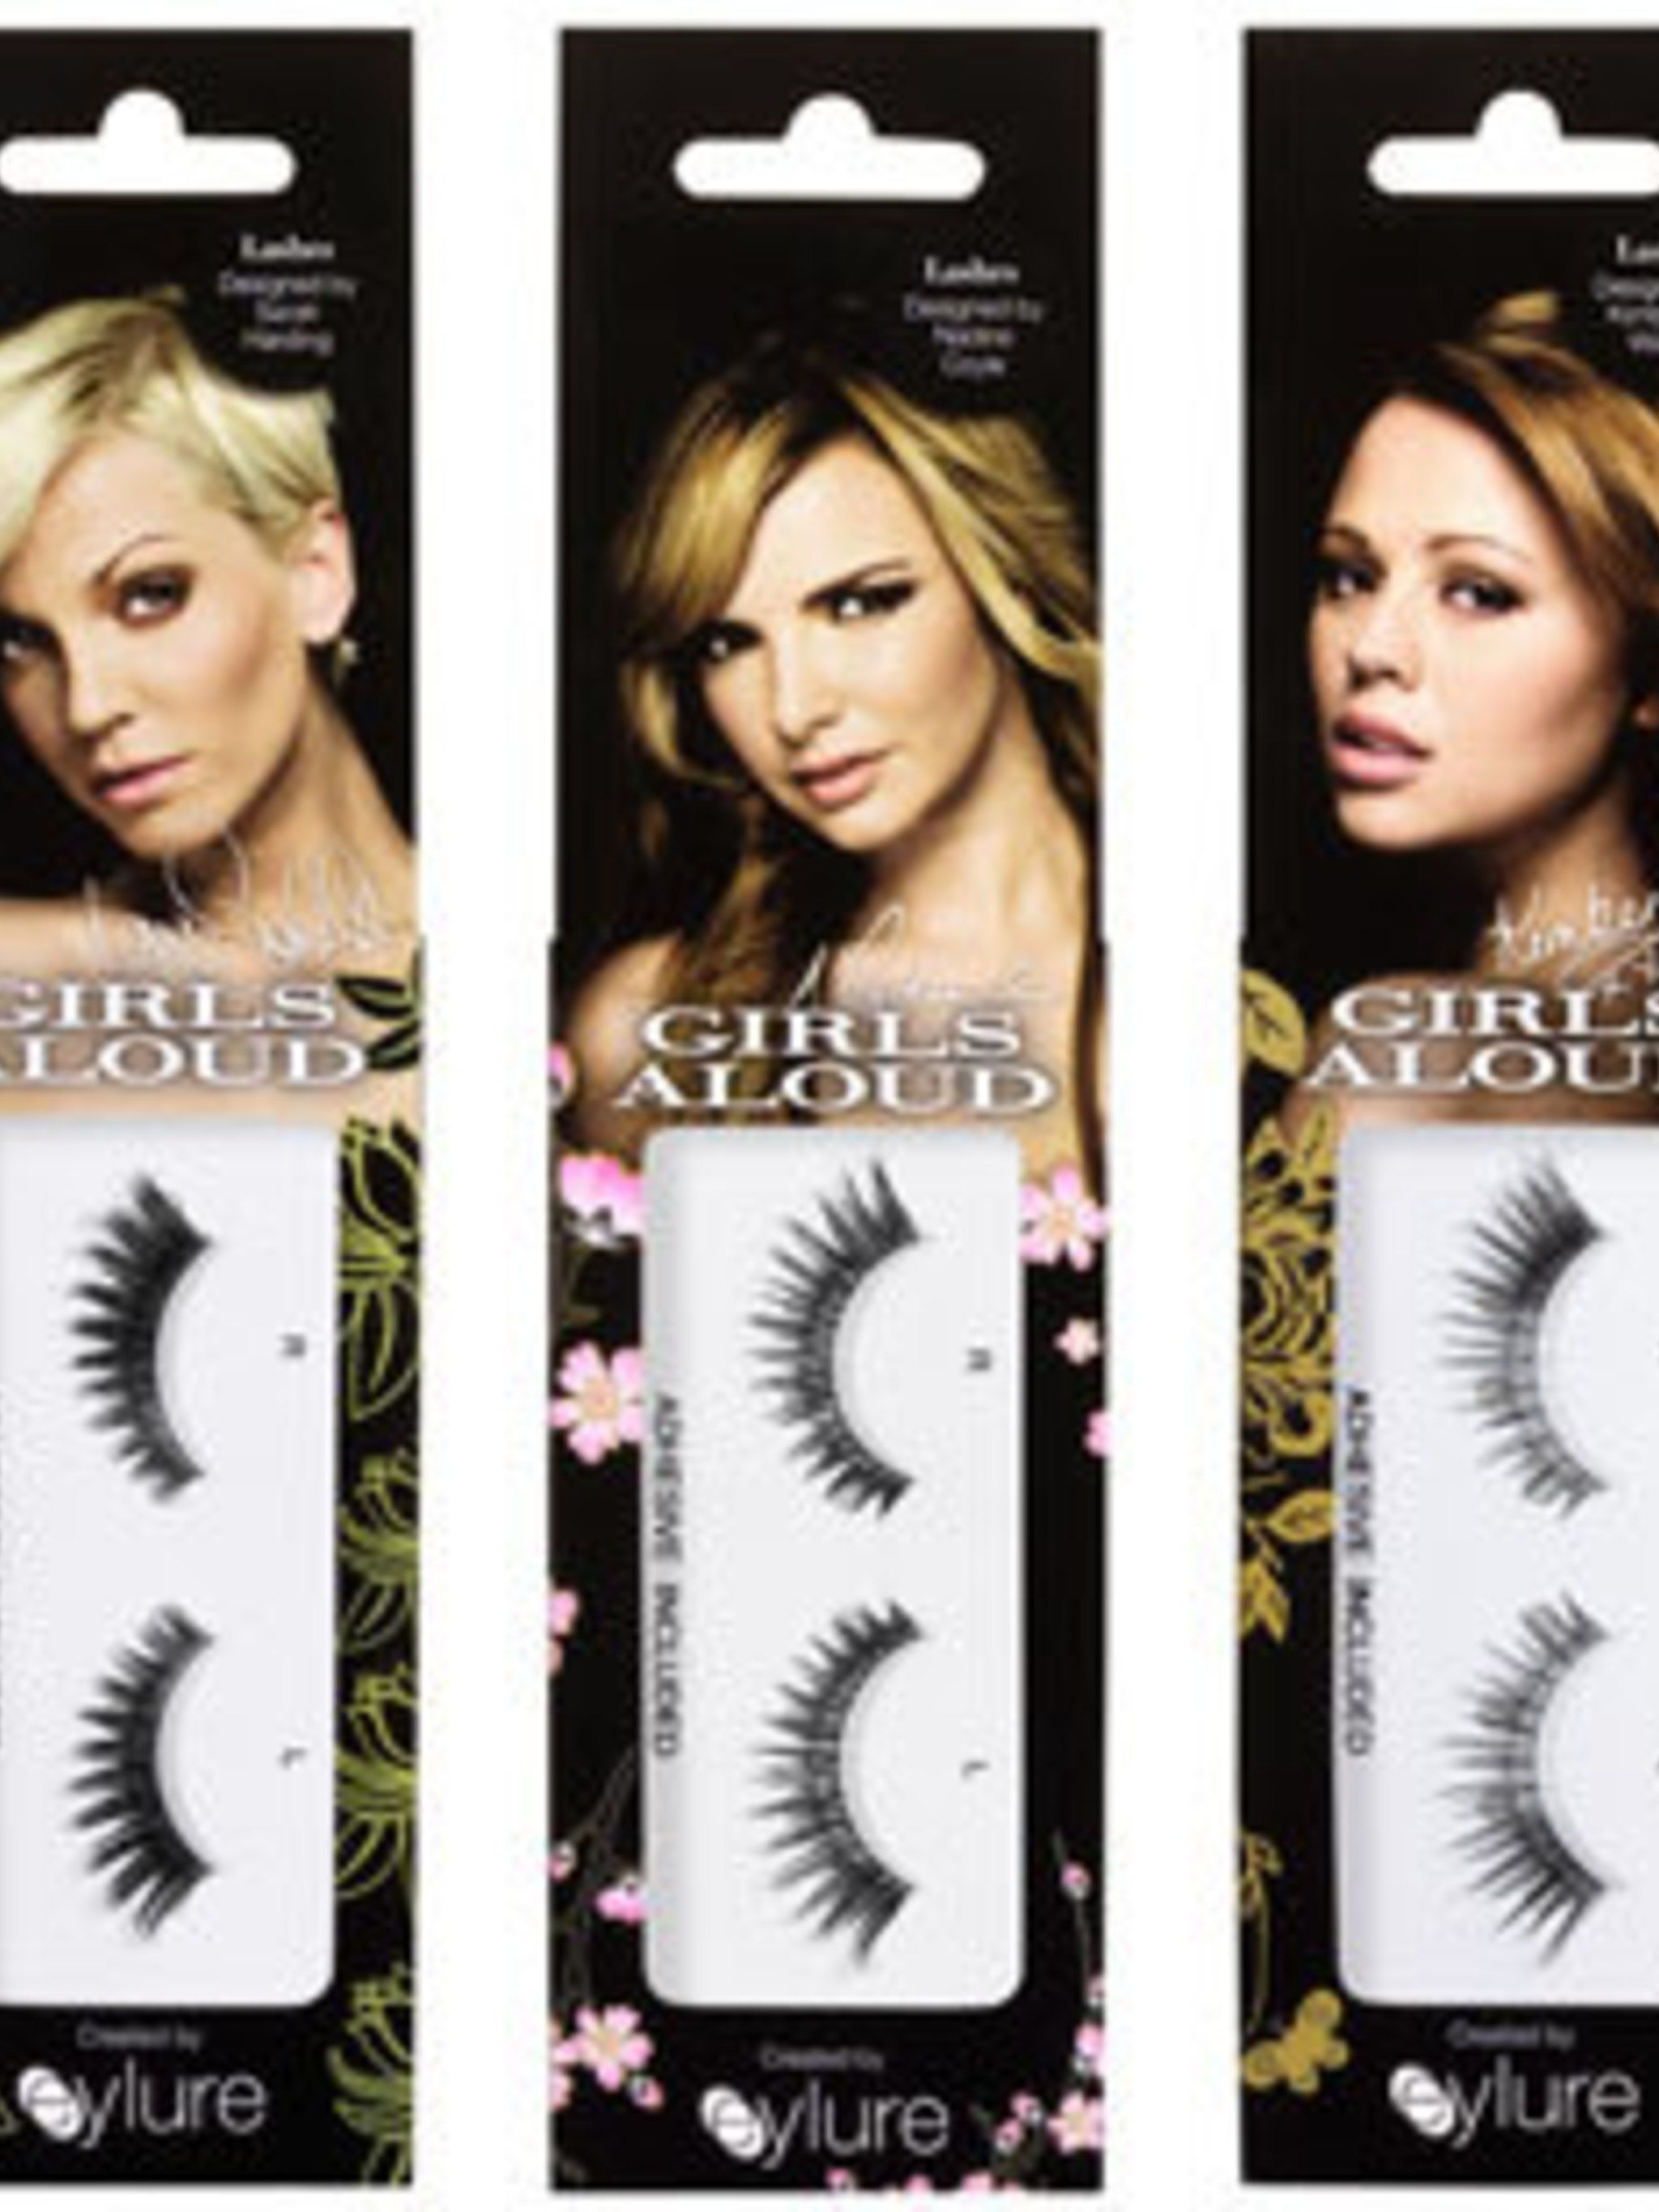 e865382cd73 Girls Aloud bat their lashes with Eylure